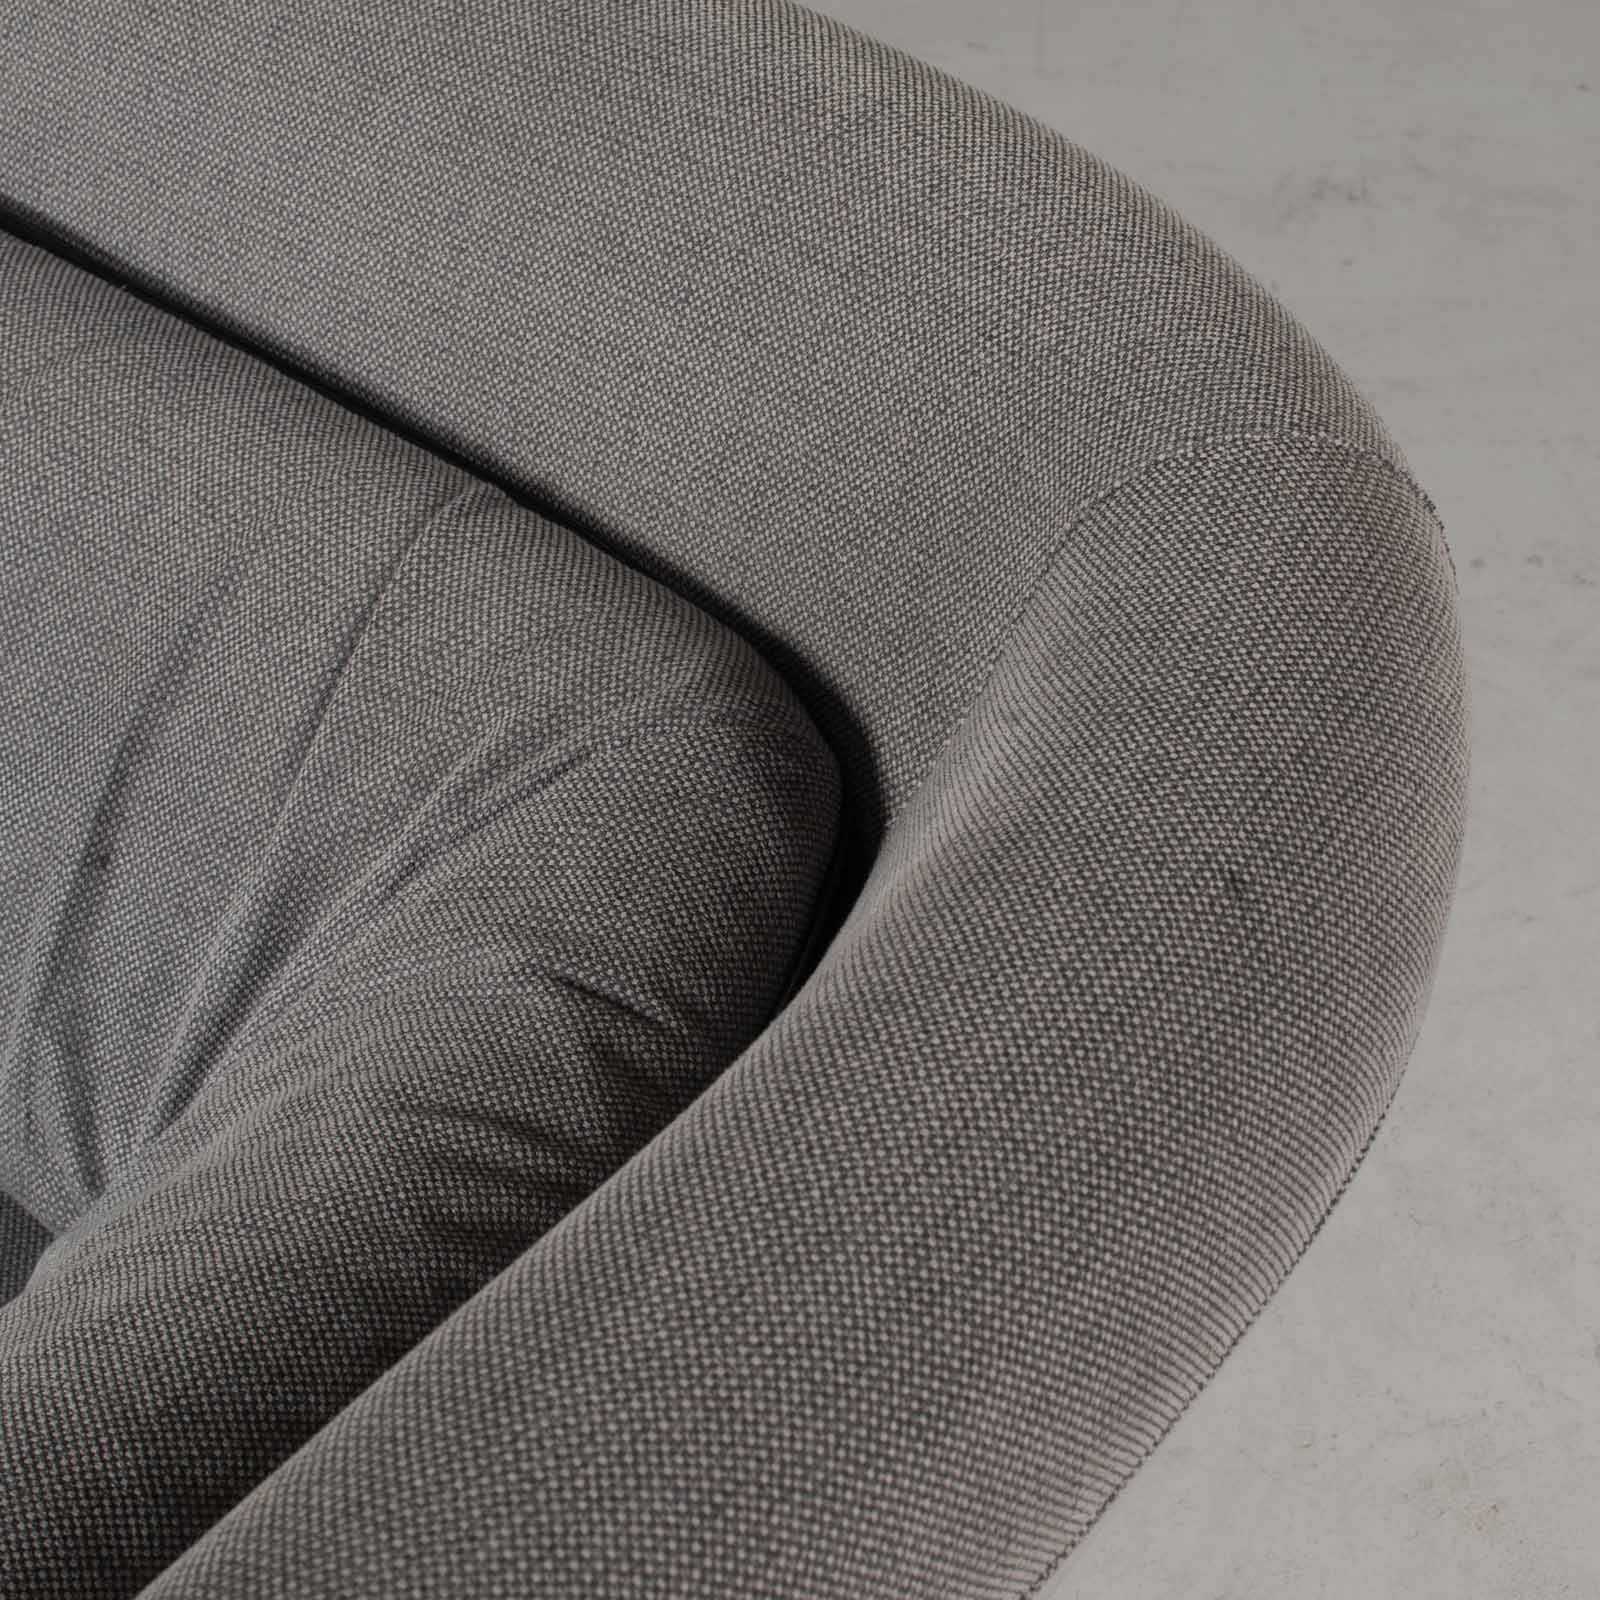 Sofa From The Yang Series By Francois Bauchet For Ligne Roset, 2002, France8